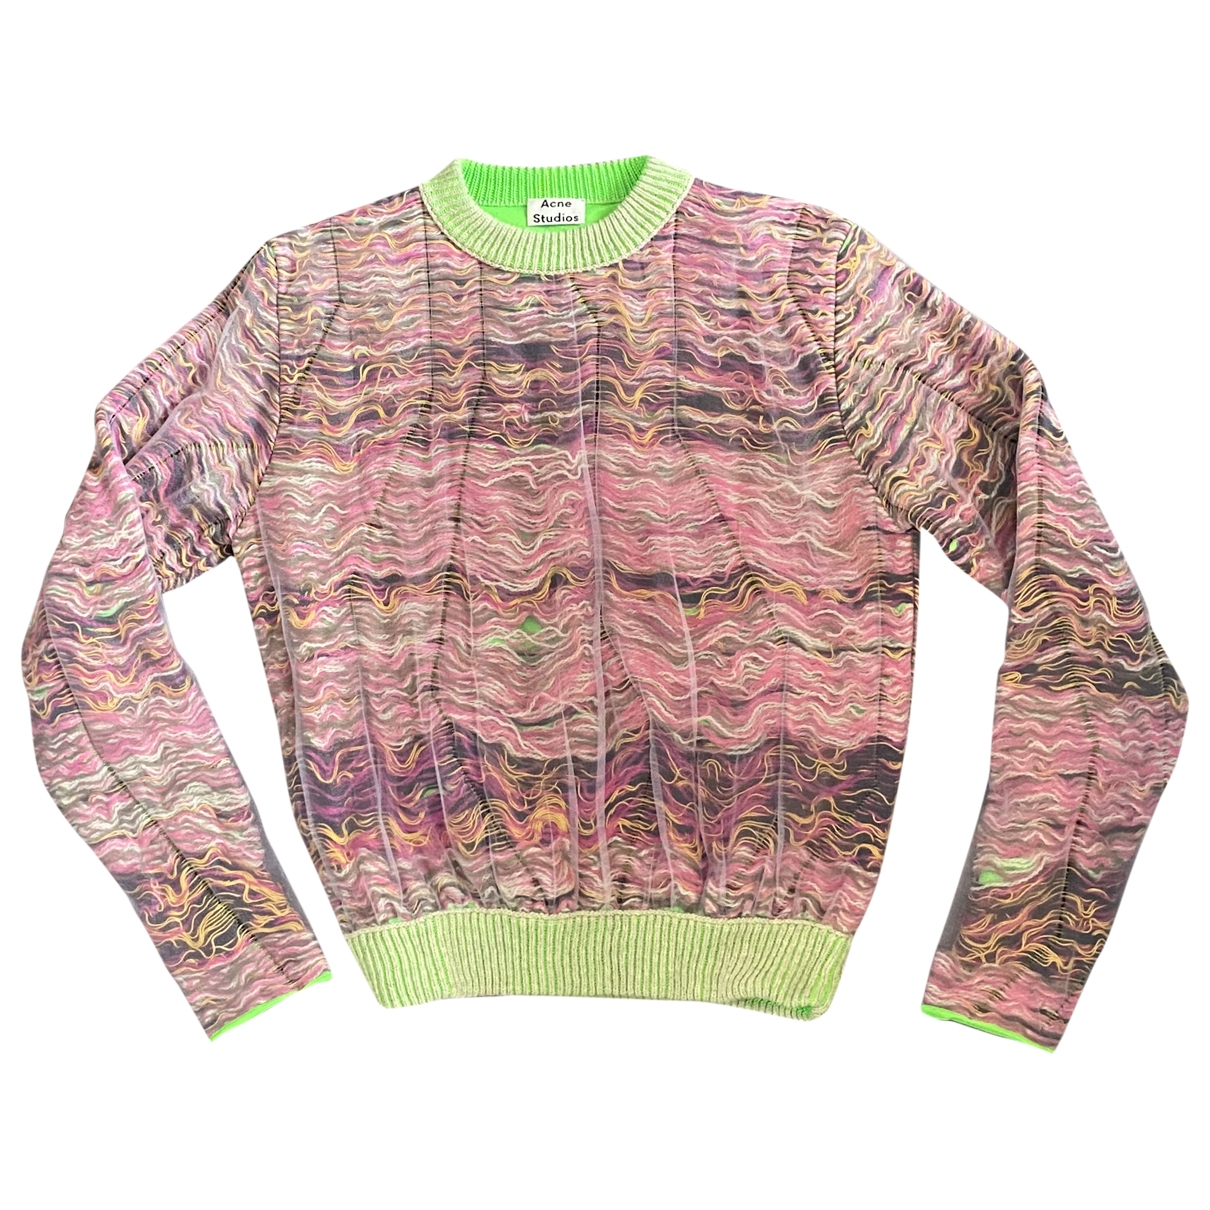 Acne Studios \N Multicolour Cotton Knitwear & Sweatshirts for Men M International